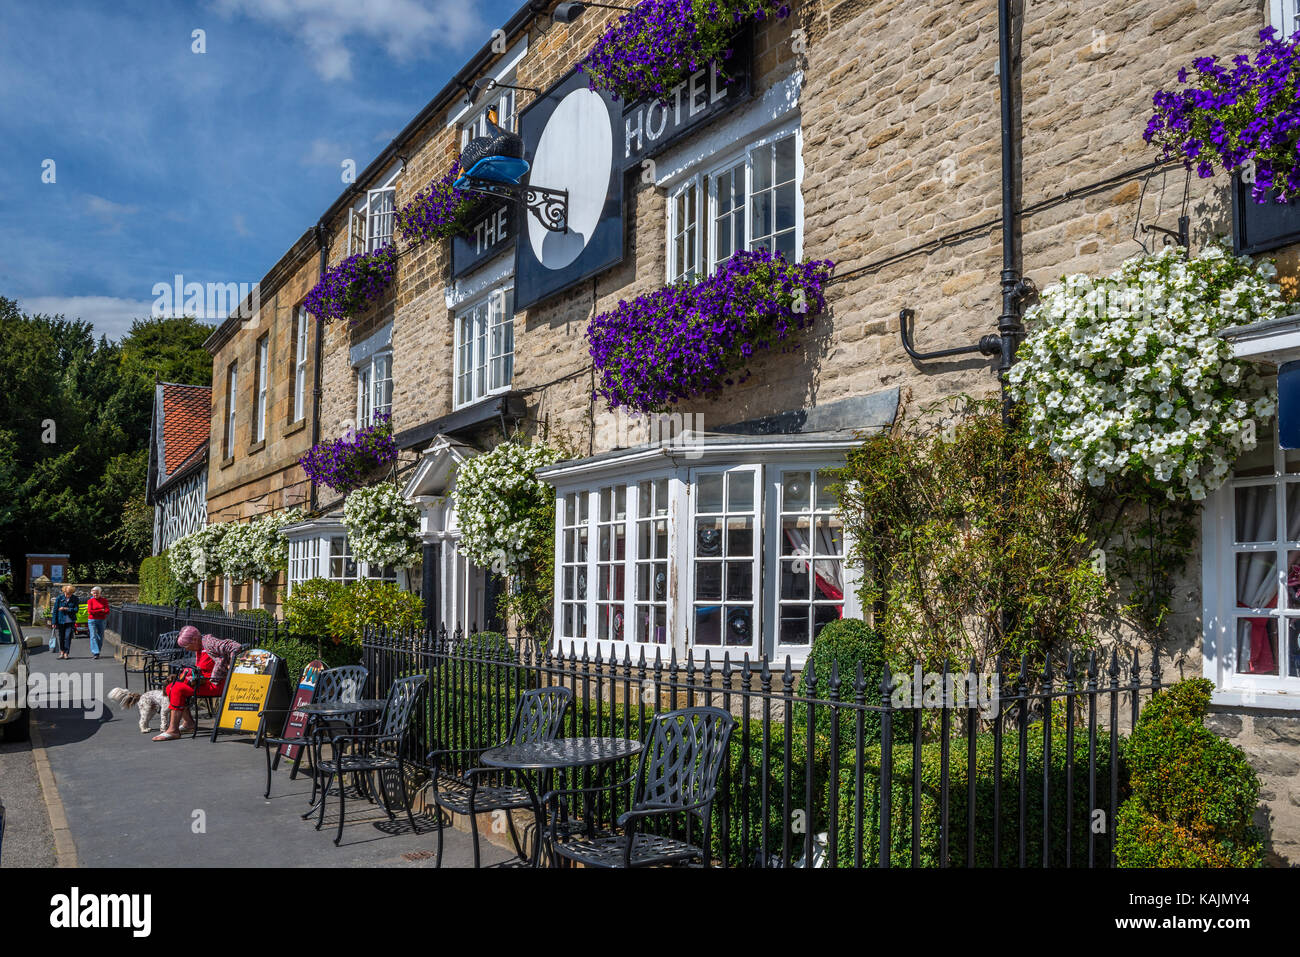 The Black Swan Hotel, Helmsley, North Yorkshire - Stock Image